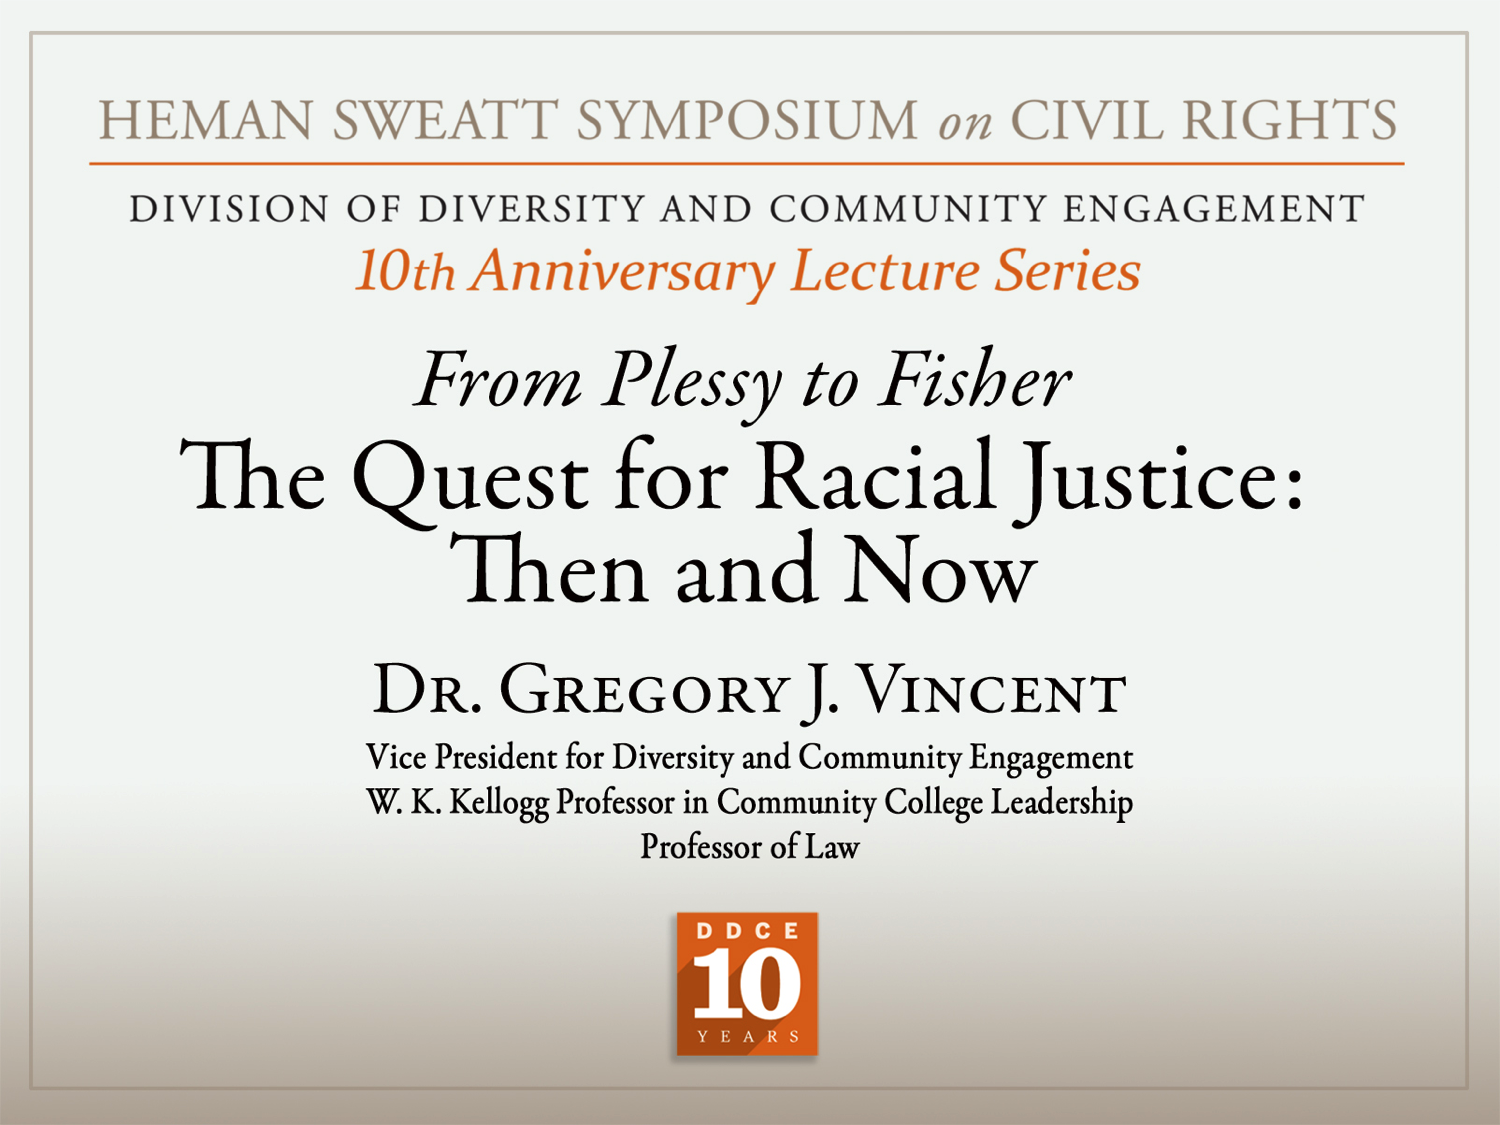 the history of affirmative action research paper Affirmative action policies are those in which an institution or organization actively engages in efforts to improve opportunities for historically excluded groups in american society affirmative action policies often focus on employment and education in institutions of higher education.